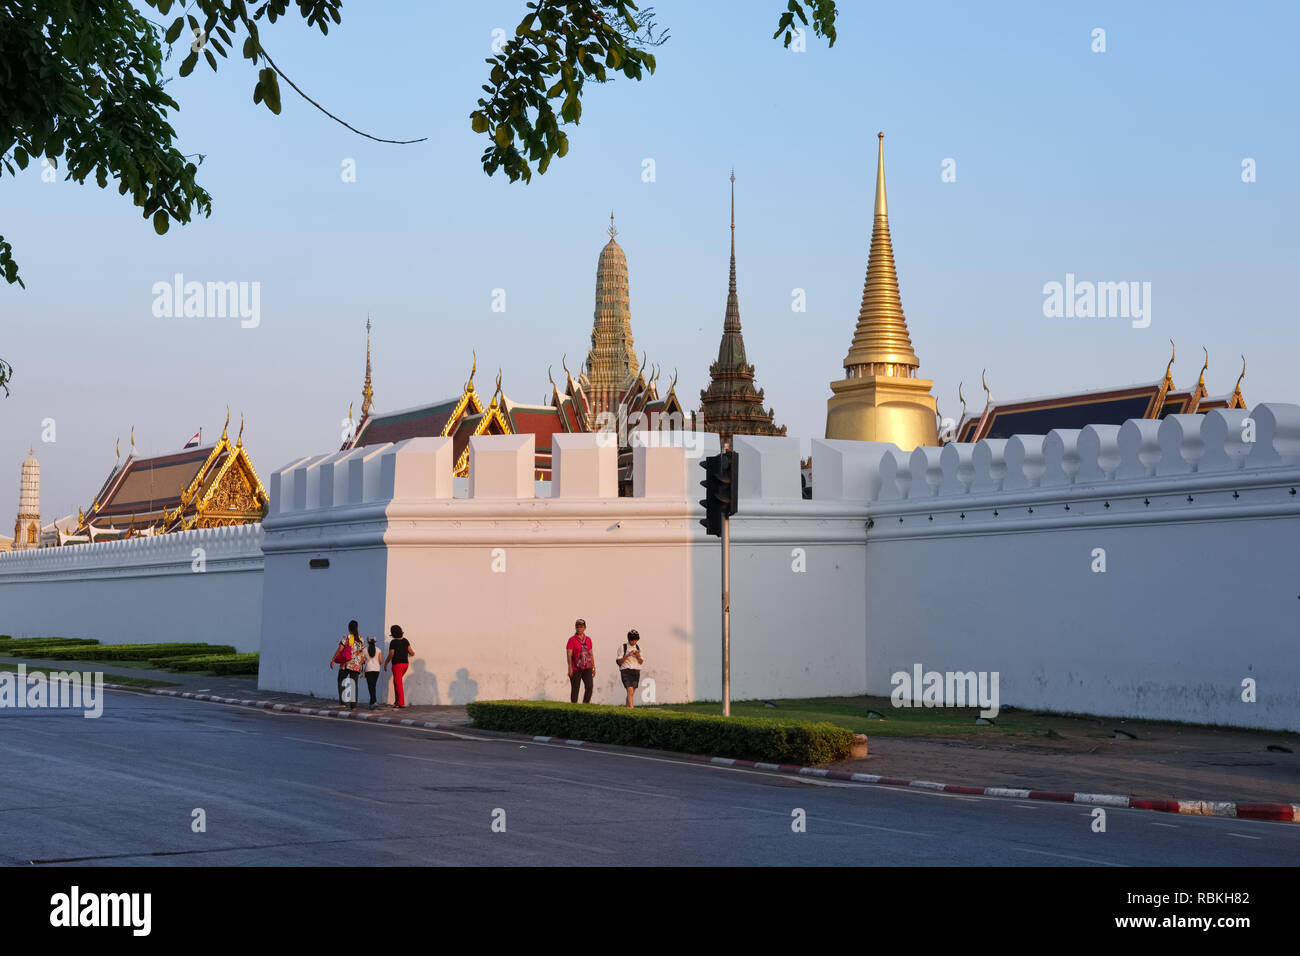 Wat Phra Kaew (Gaew) and Grand Palace in Bangkok, Thailand, home of the Jade Buddha and the country's most revered temple, seen from its northern wall Stock Photo